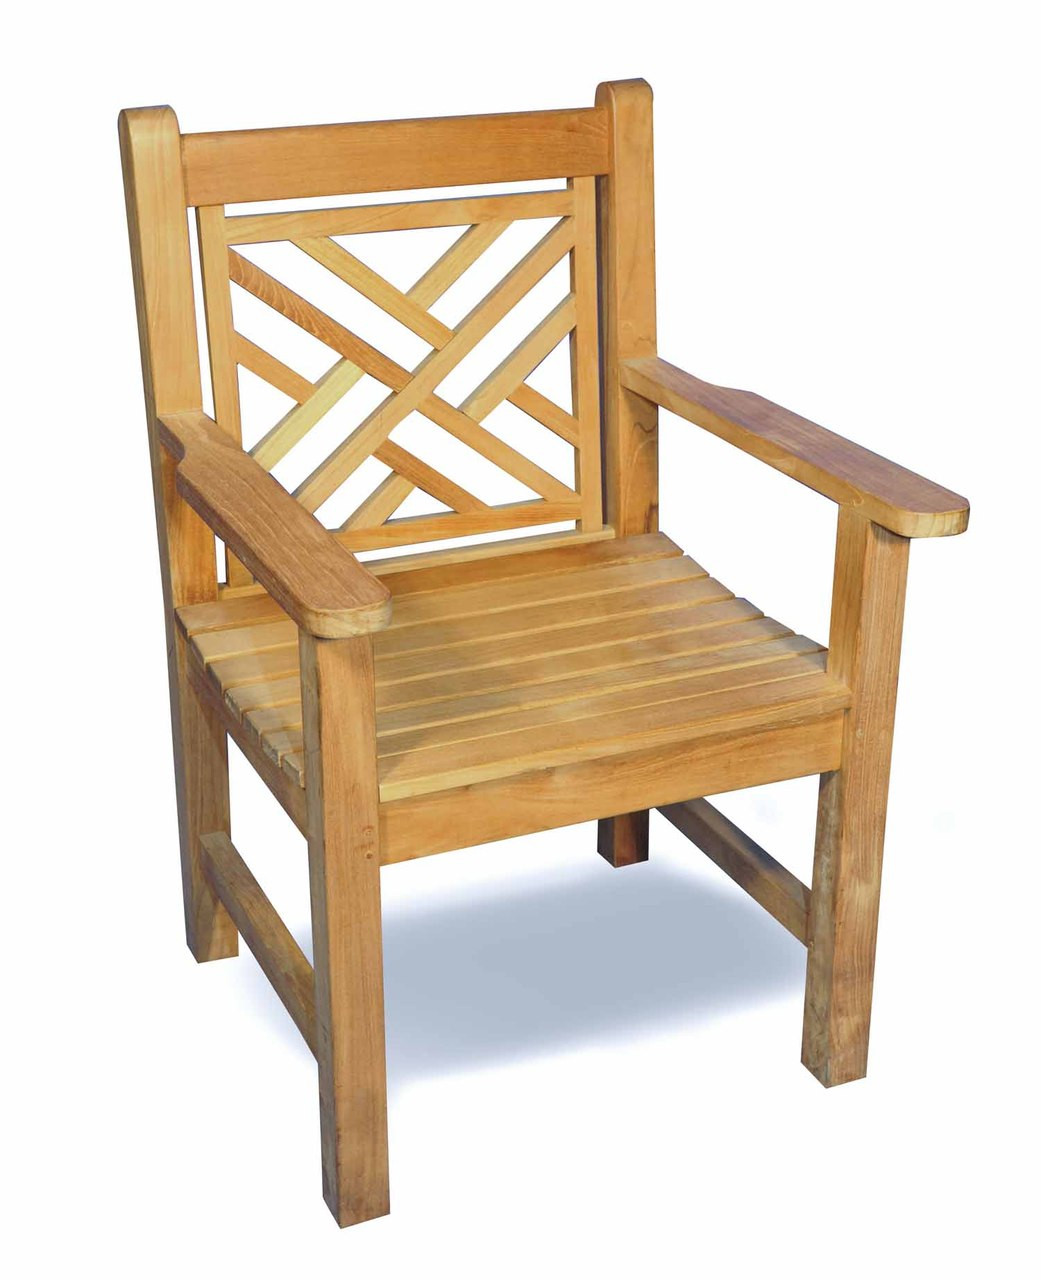 Home Outdoor Living Outdoor Furniture Chairs Teak Chippendale Chair By